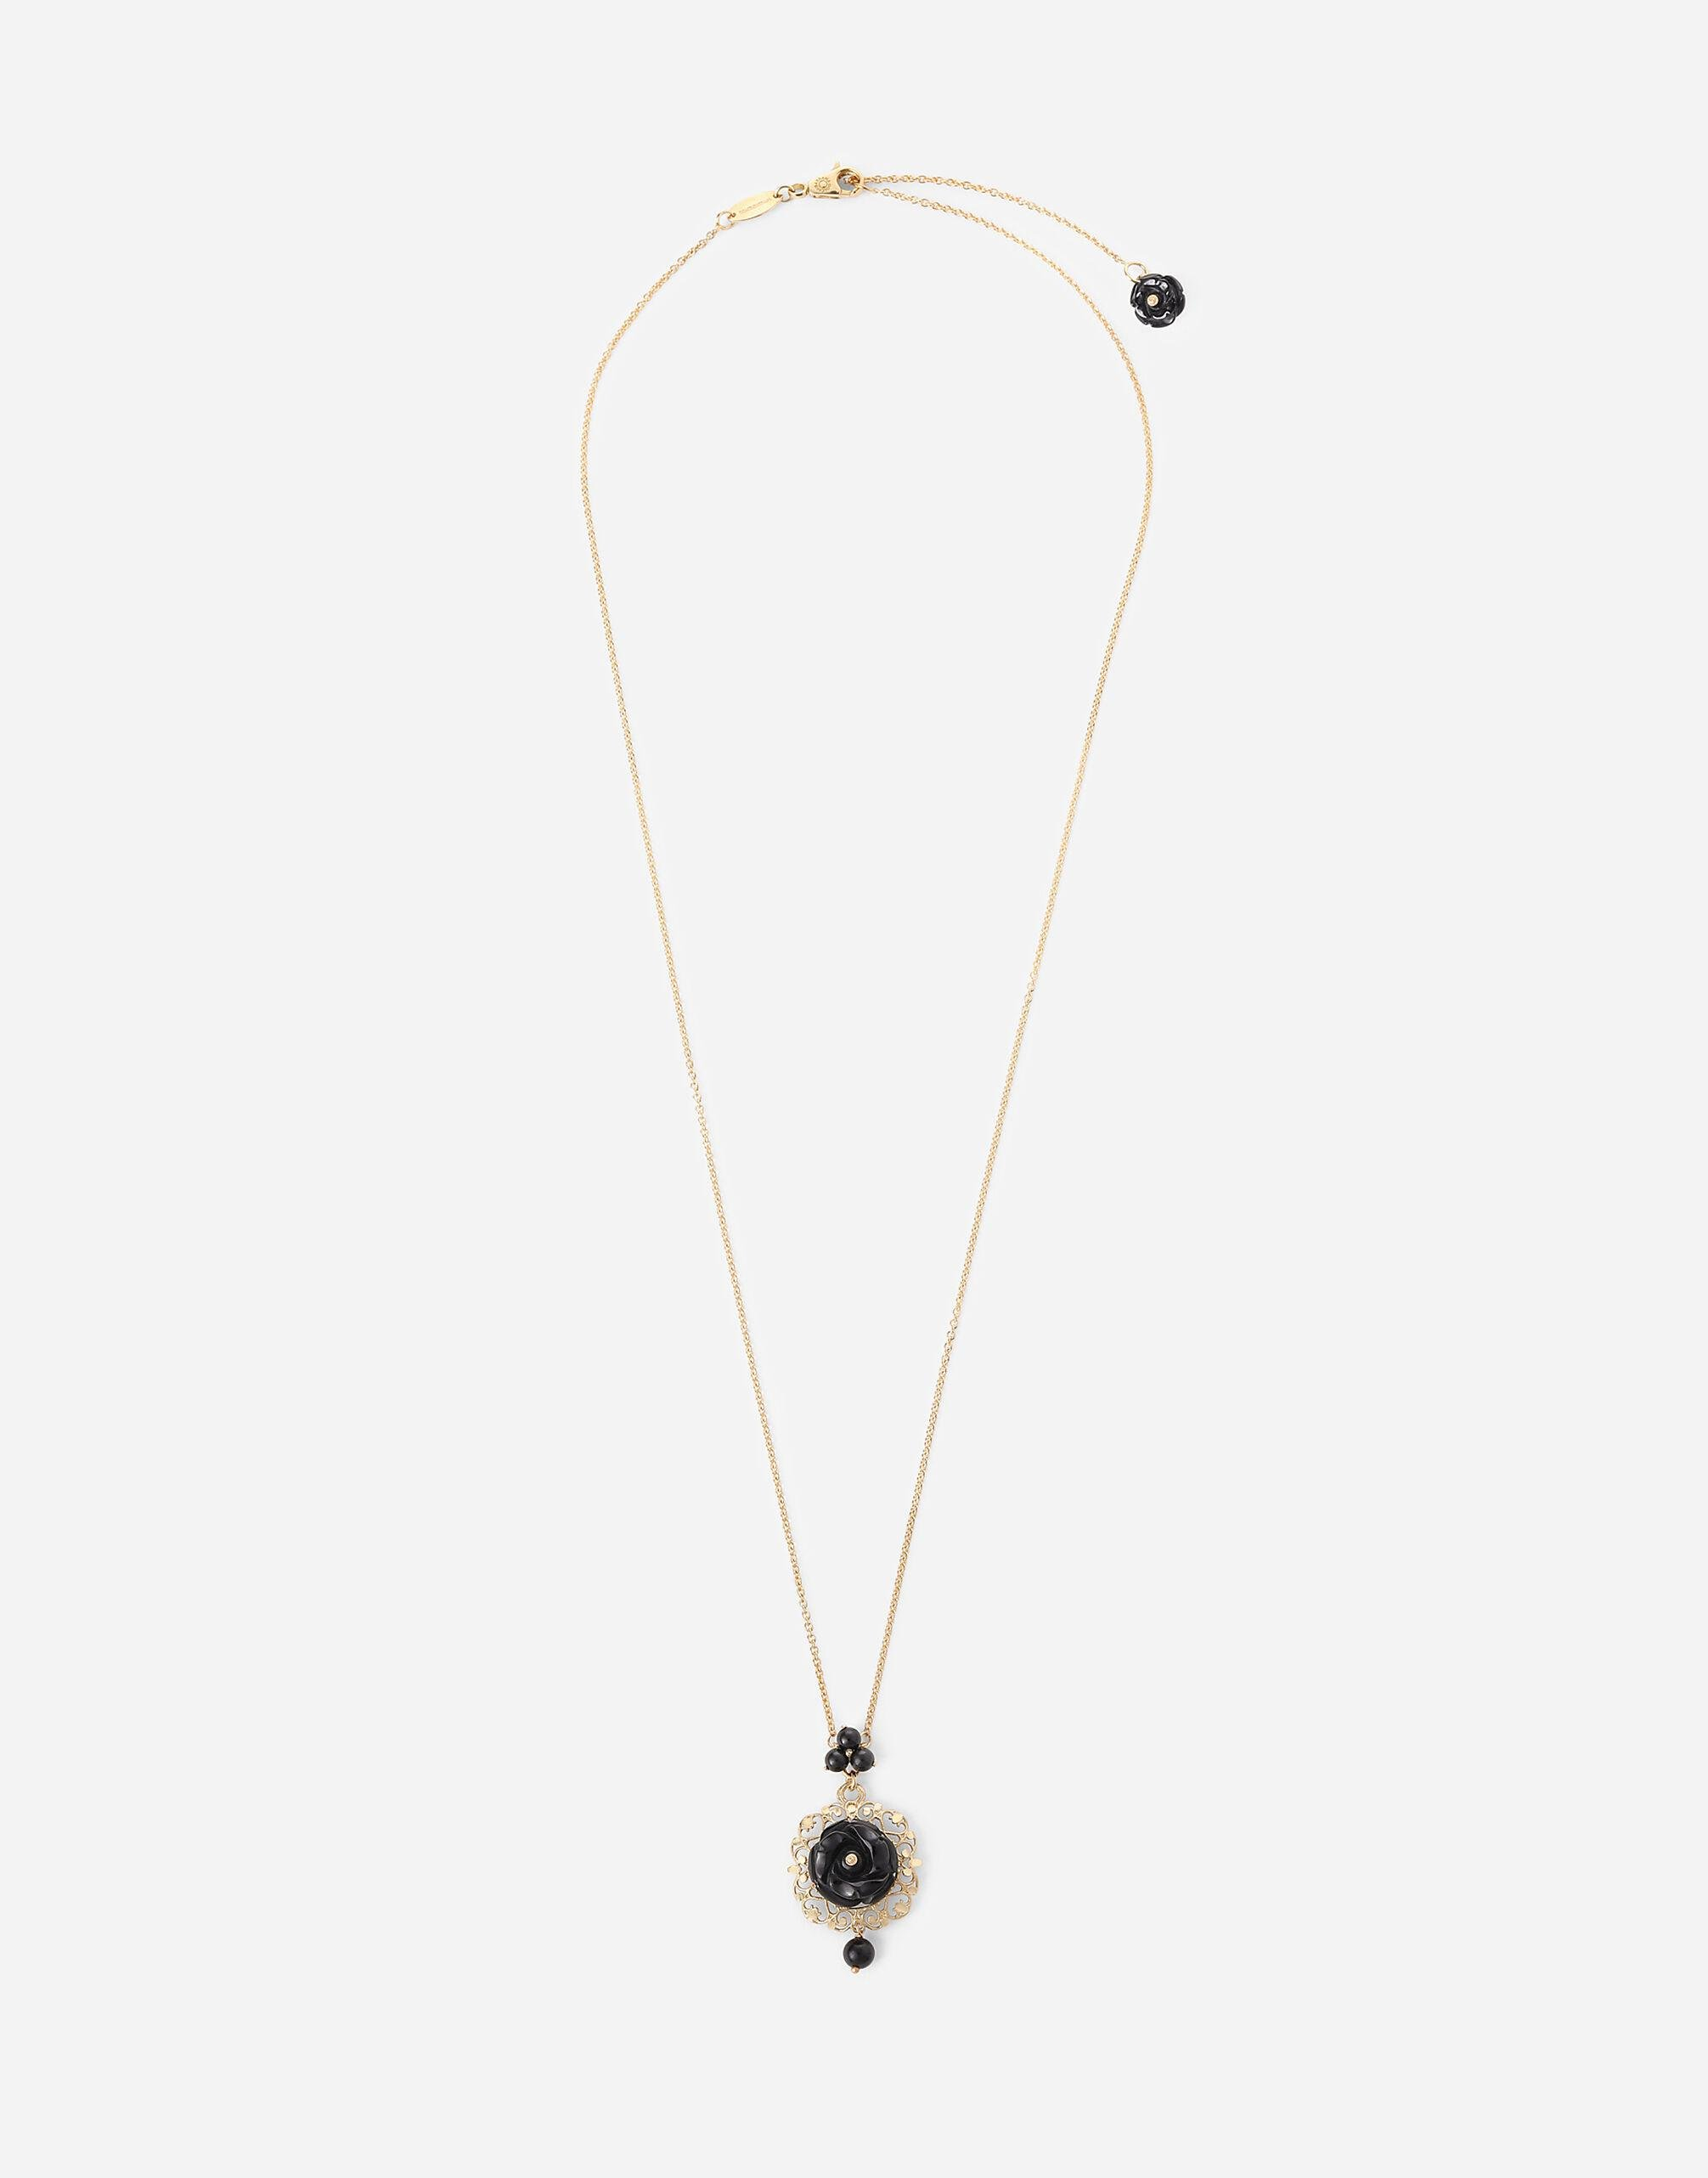 Rose necklace in yellow 18kt gold with black jade rose